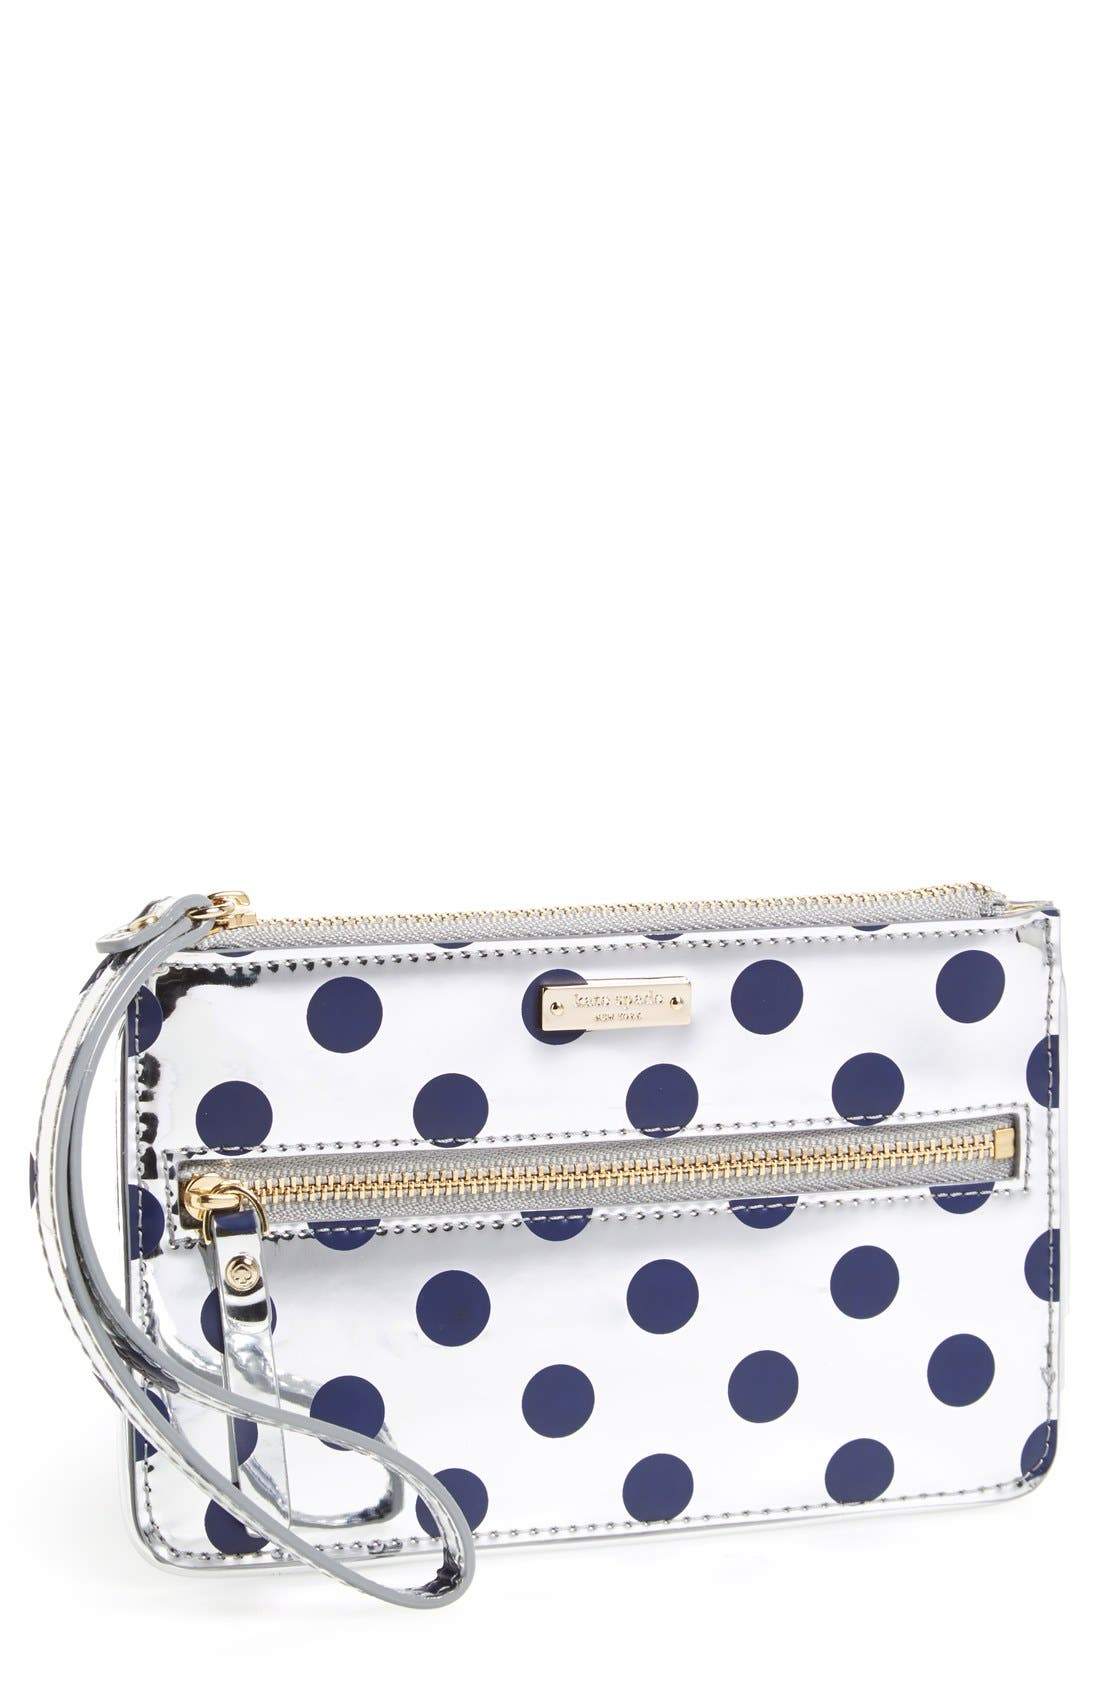 Main Image - kate spade new york 'carlisle street - bee' leather wristlet